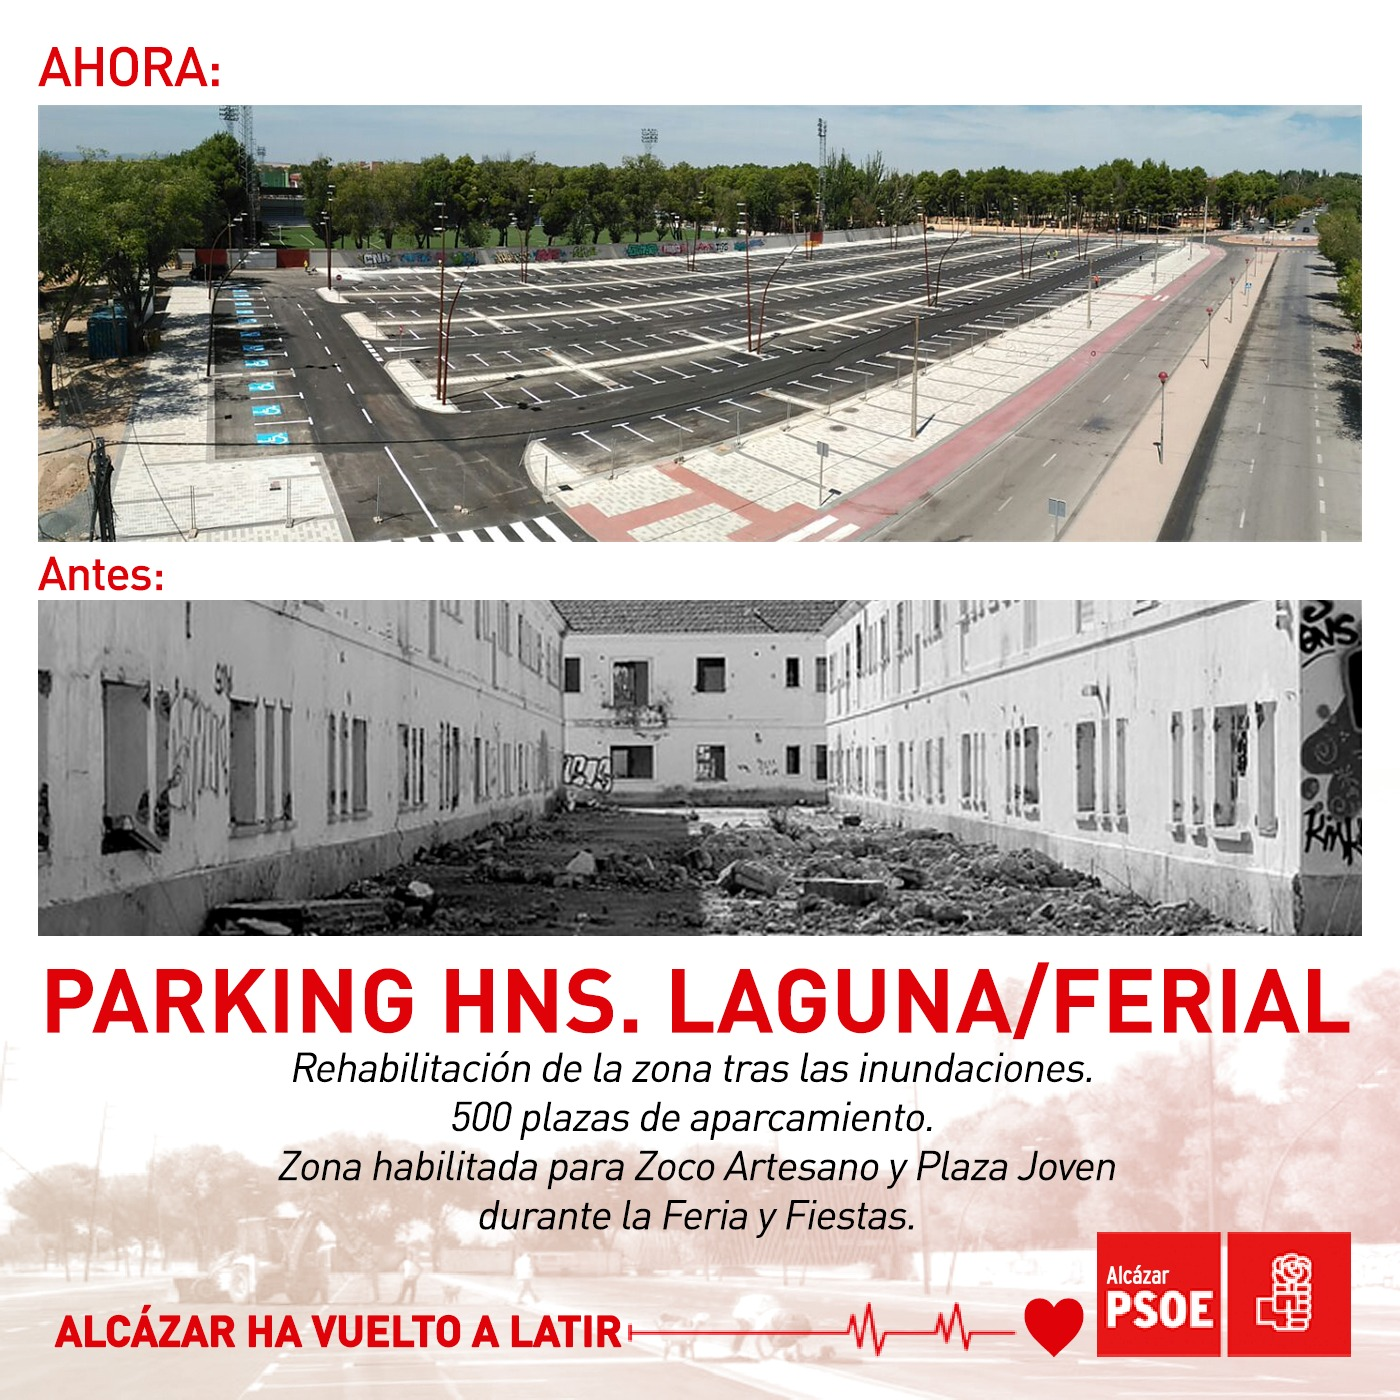 Parking Hermanos Laguna - Ferial